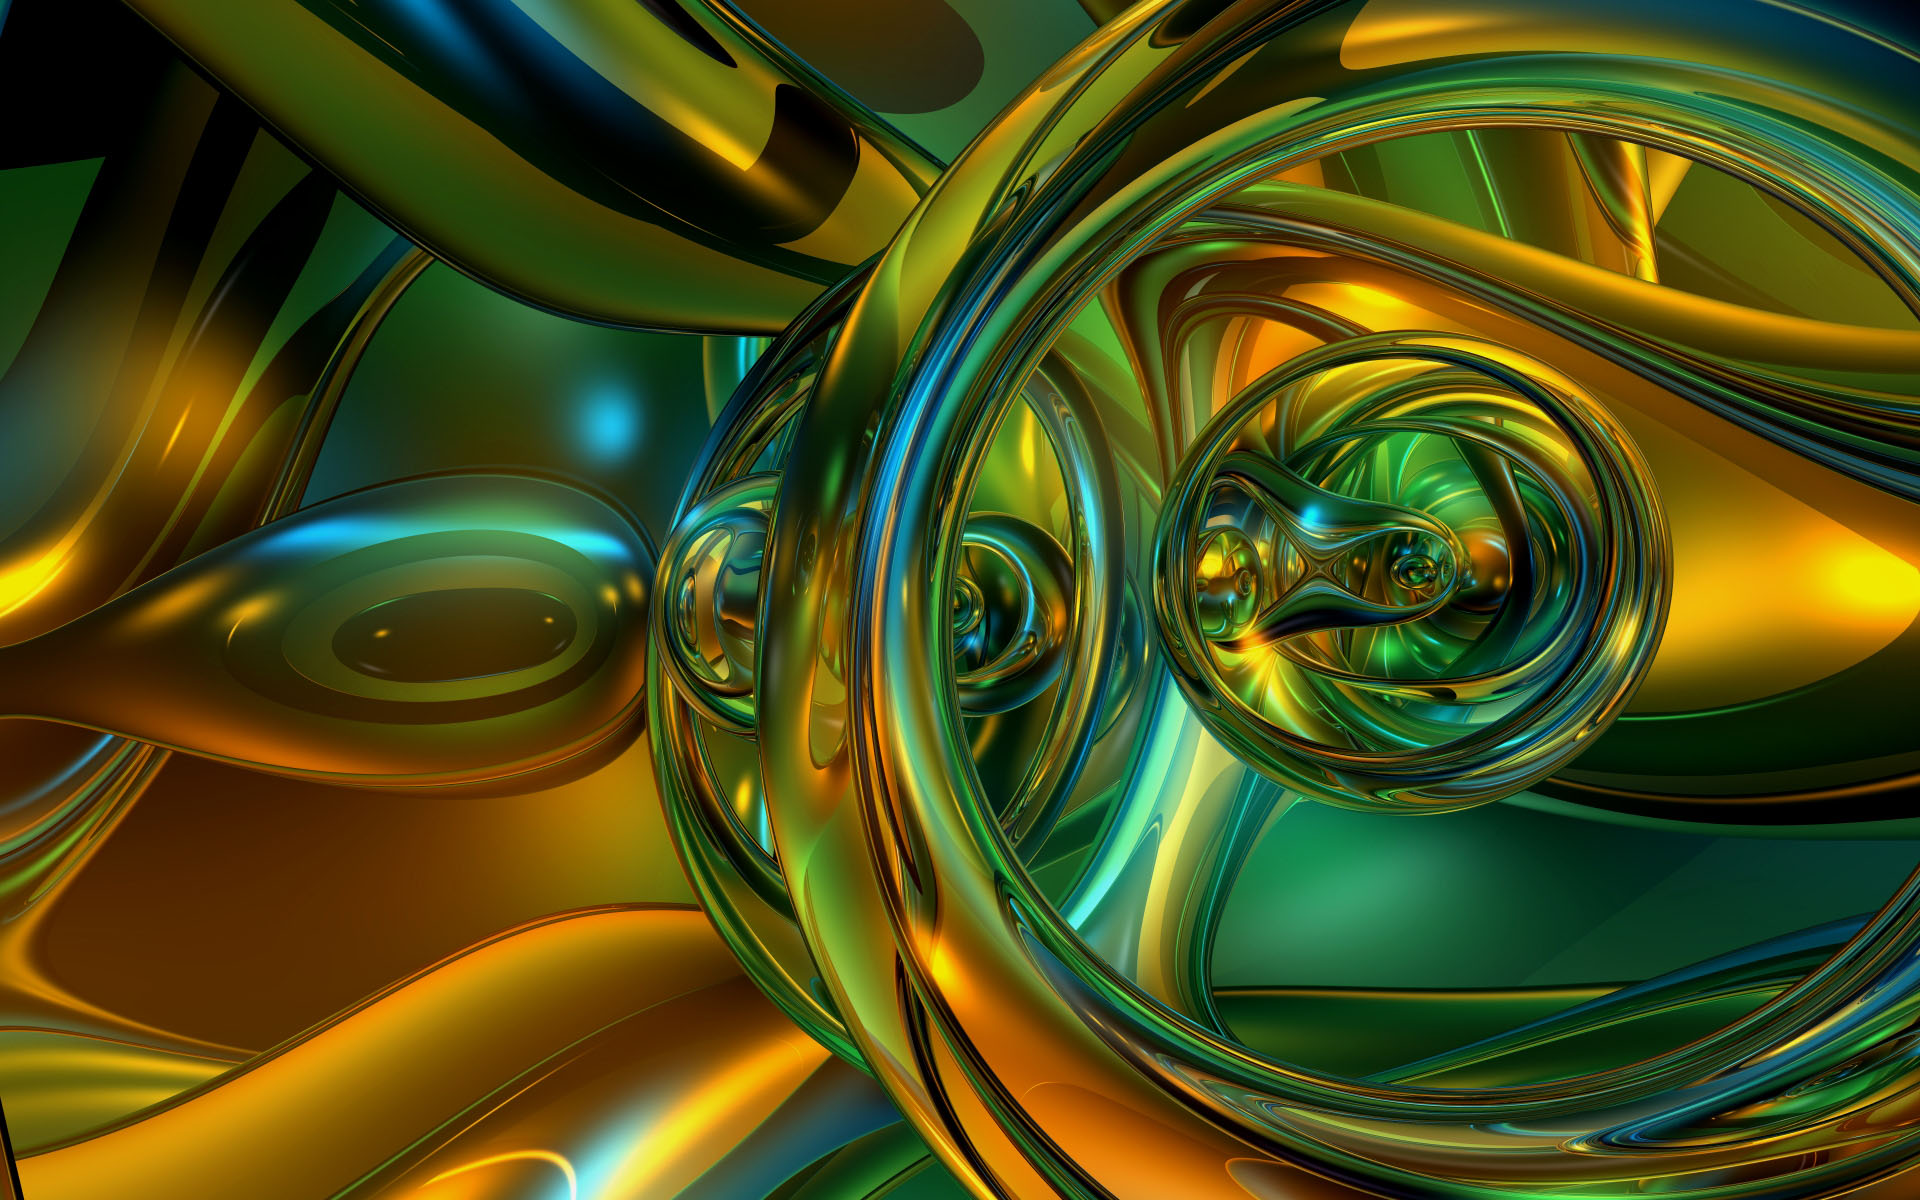 Wallpapers Abstract 3d Wallpapers 1920x1200